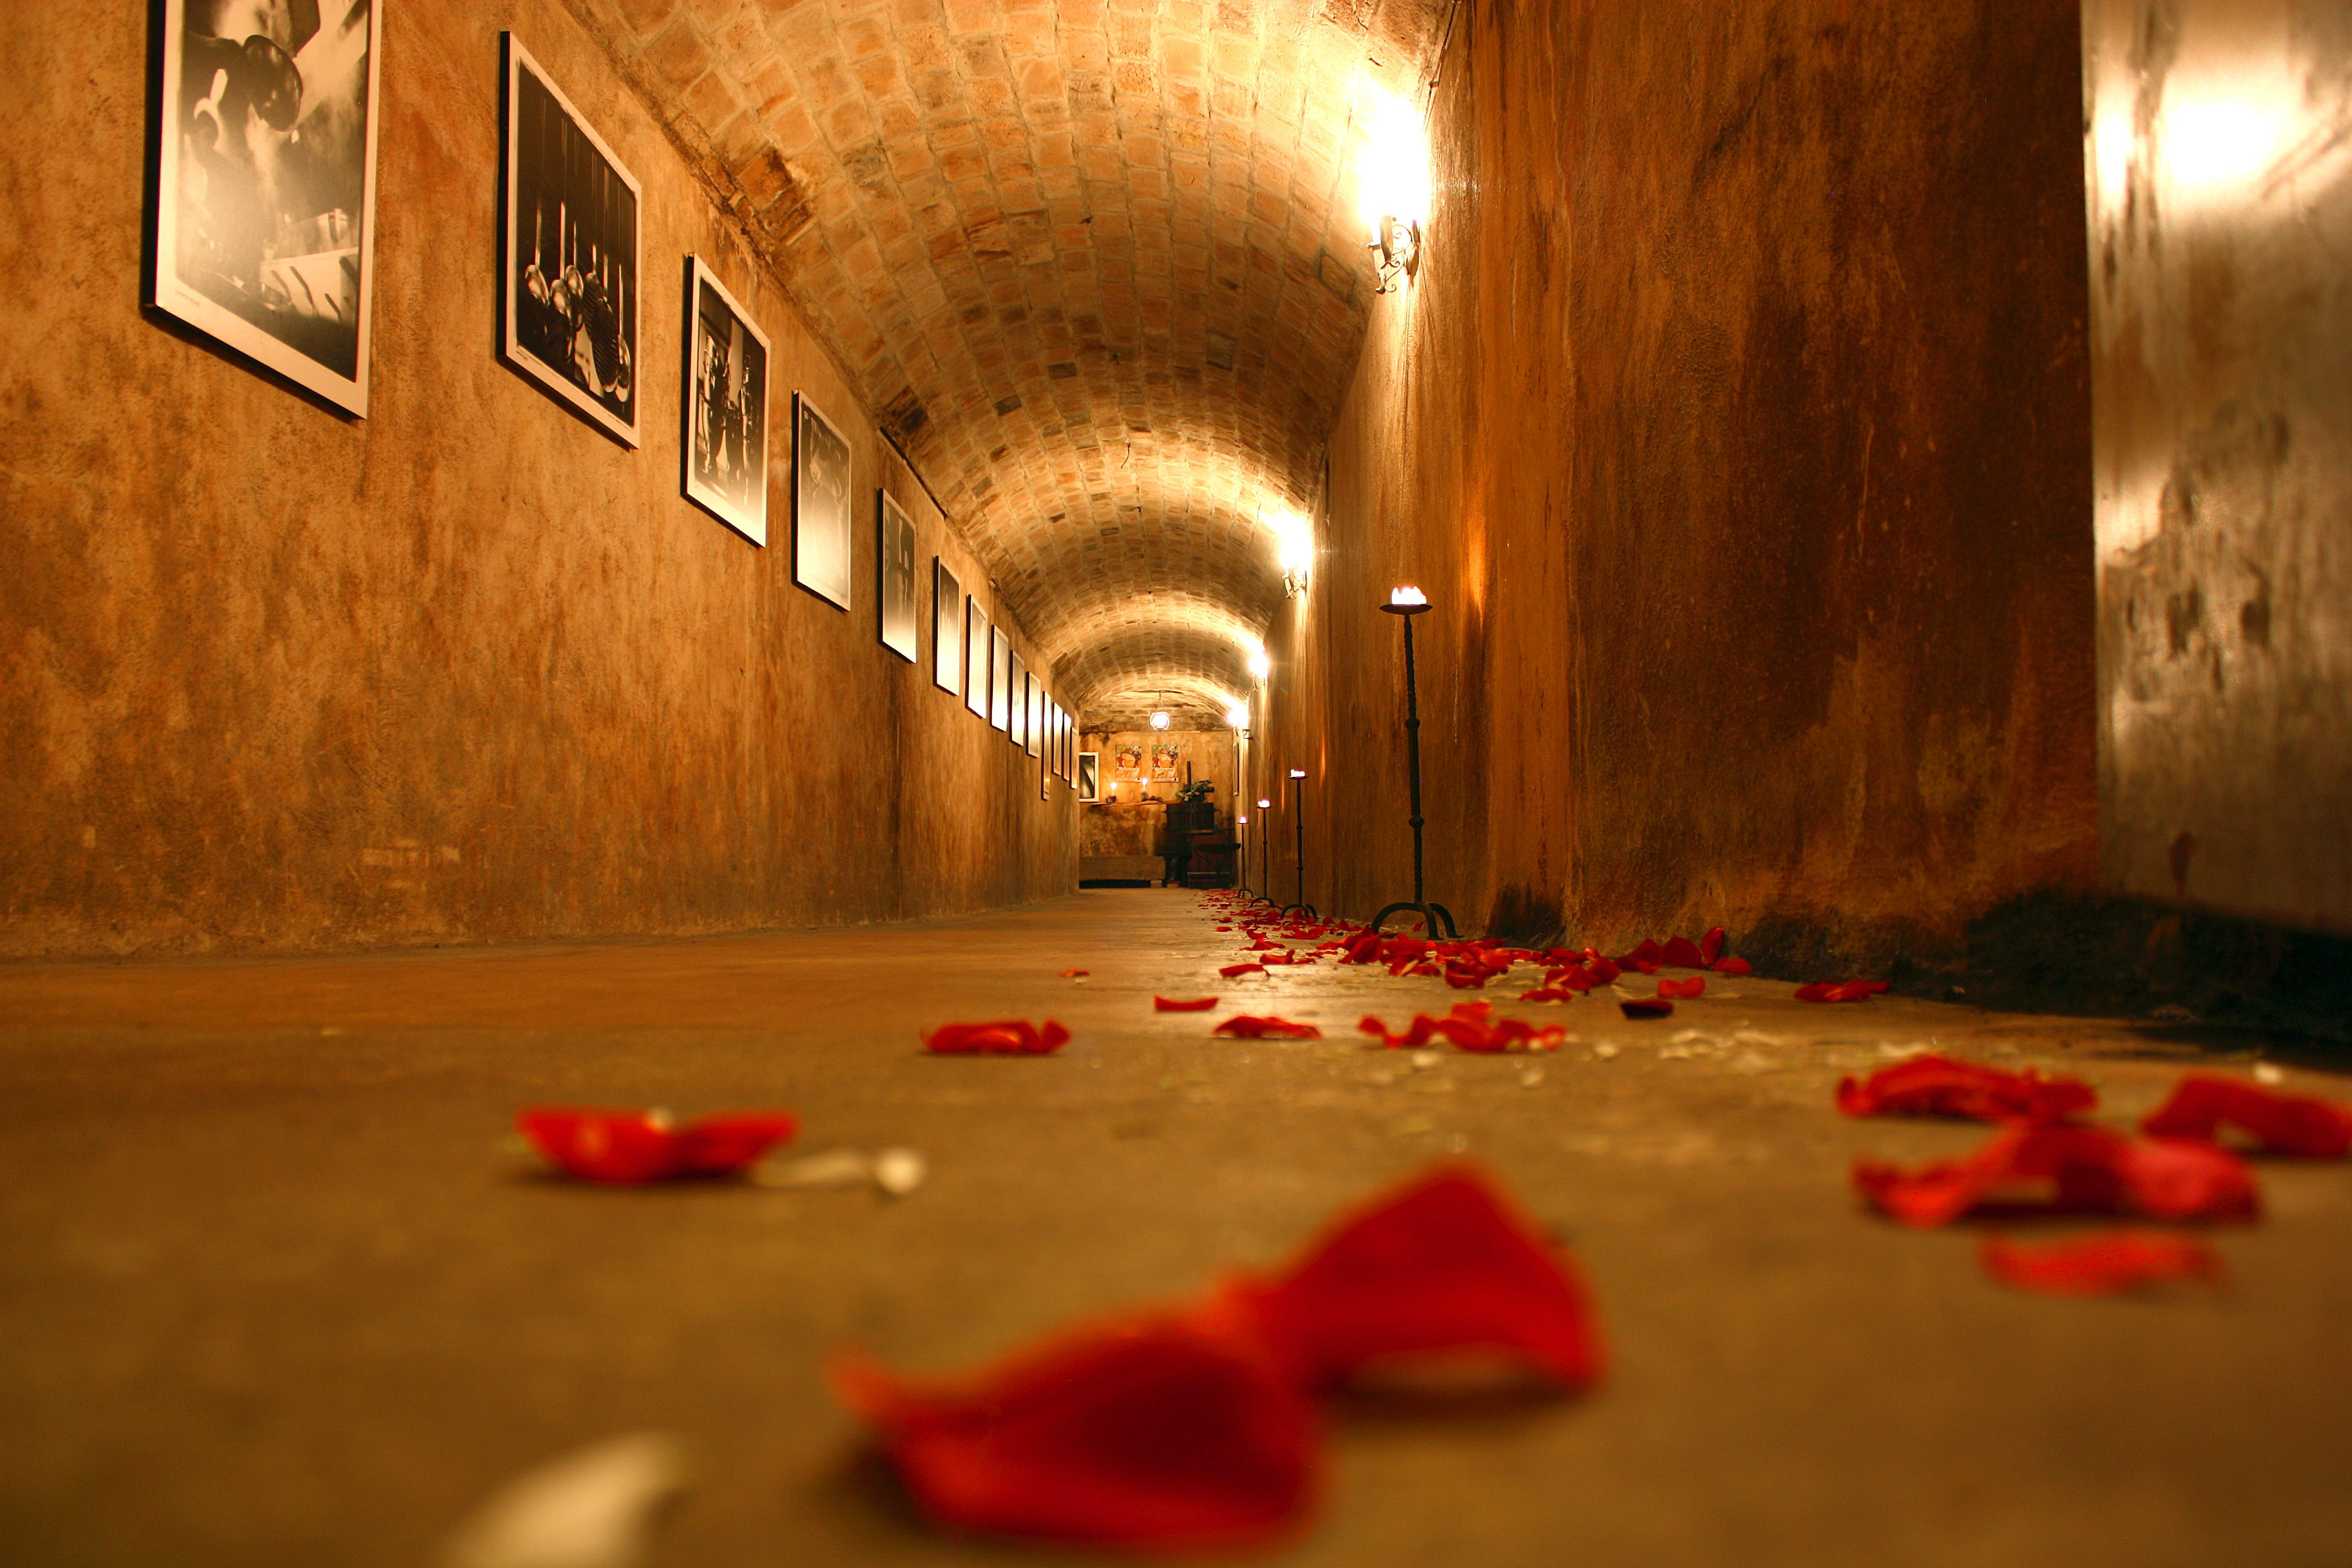 Free stock photo of petals, architecture, hallway, indoors